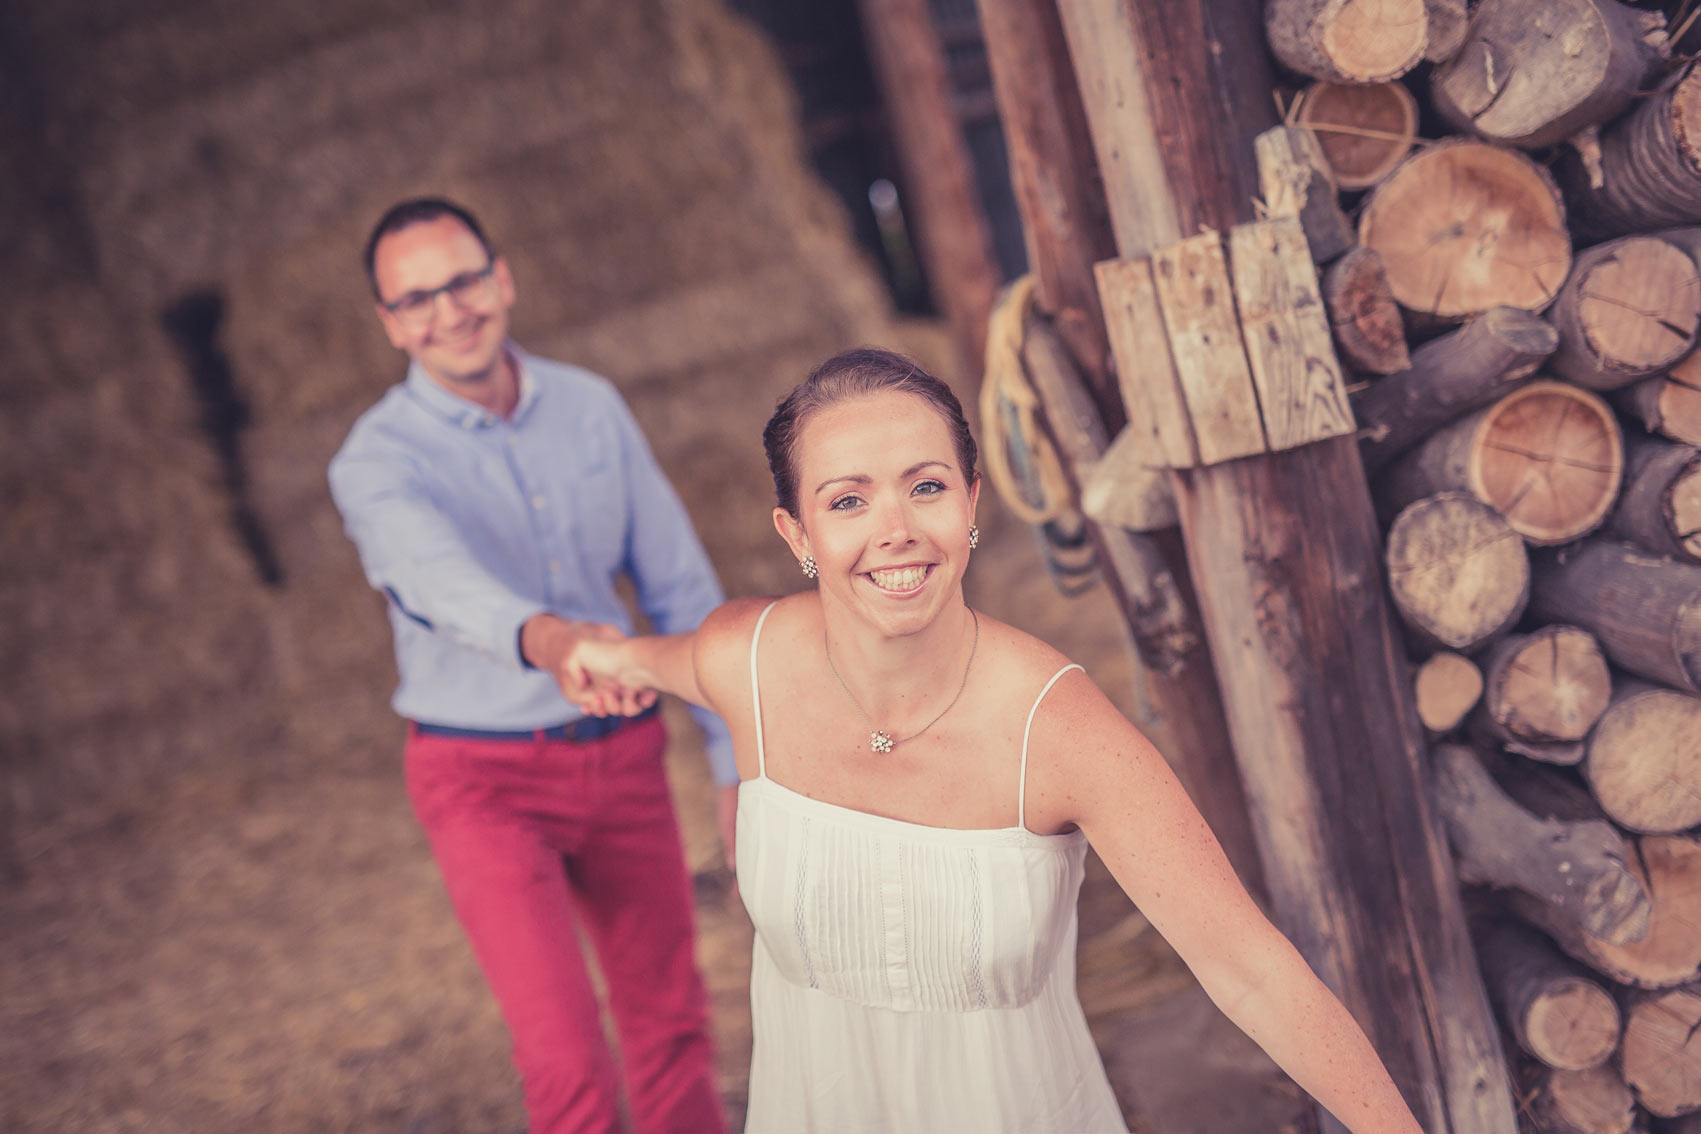 Engagement-Shooting Paarshooting zur Verlobung in einer Scheune